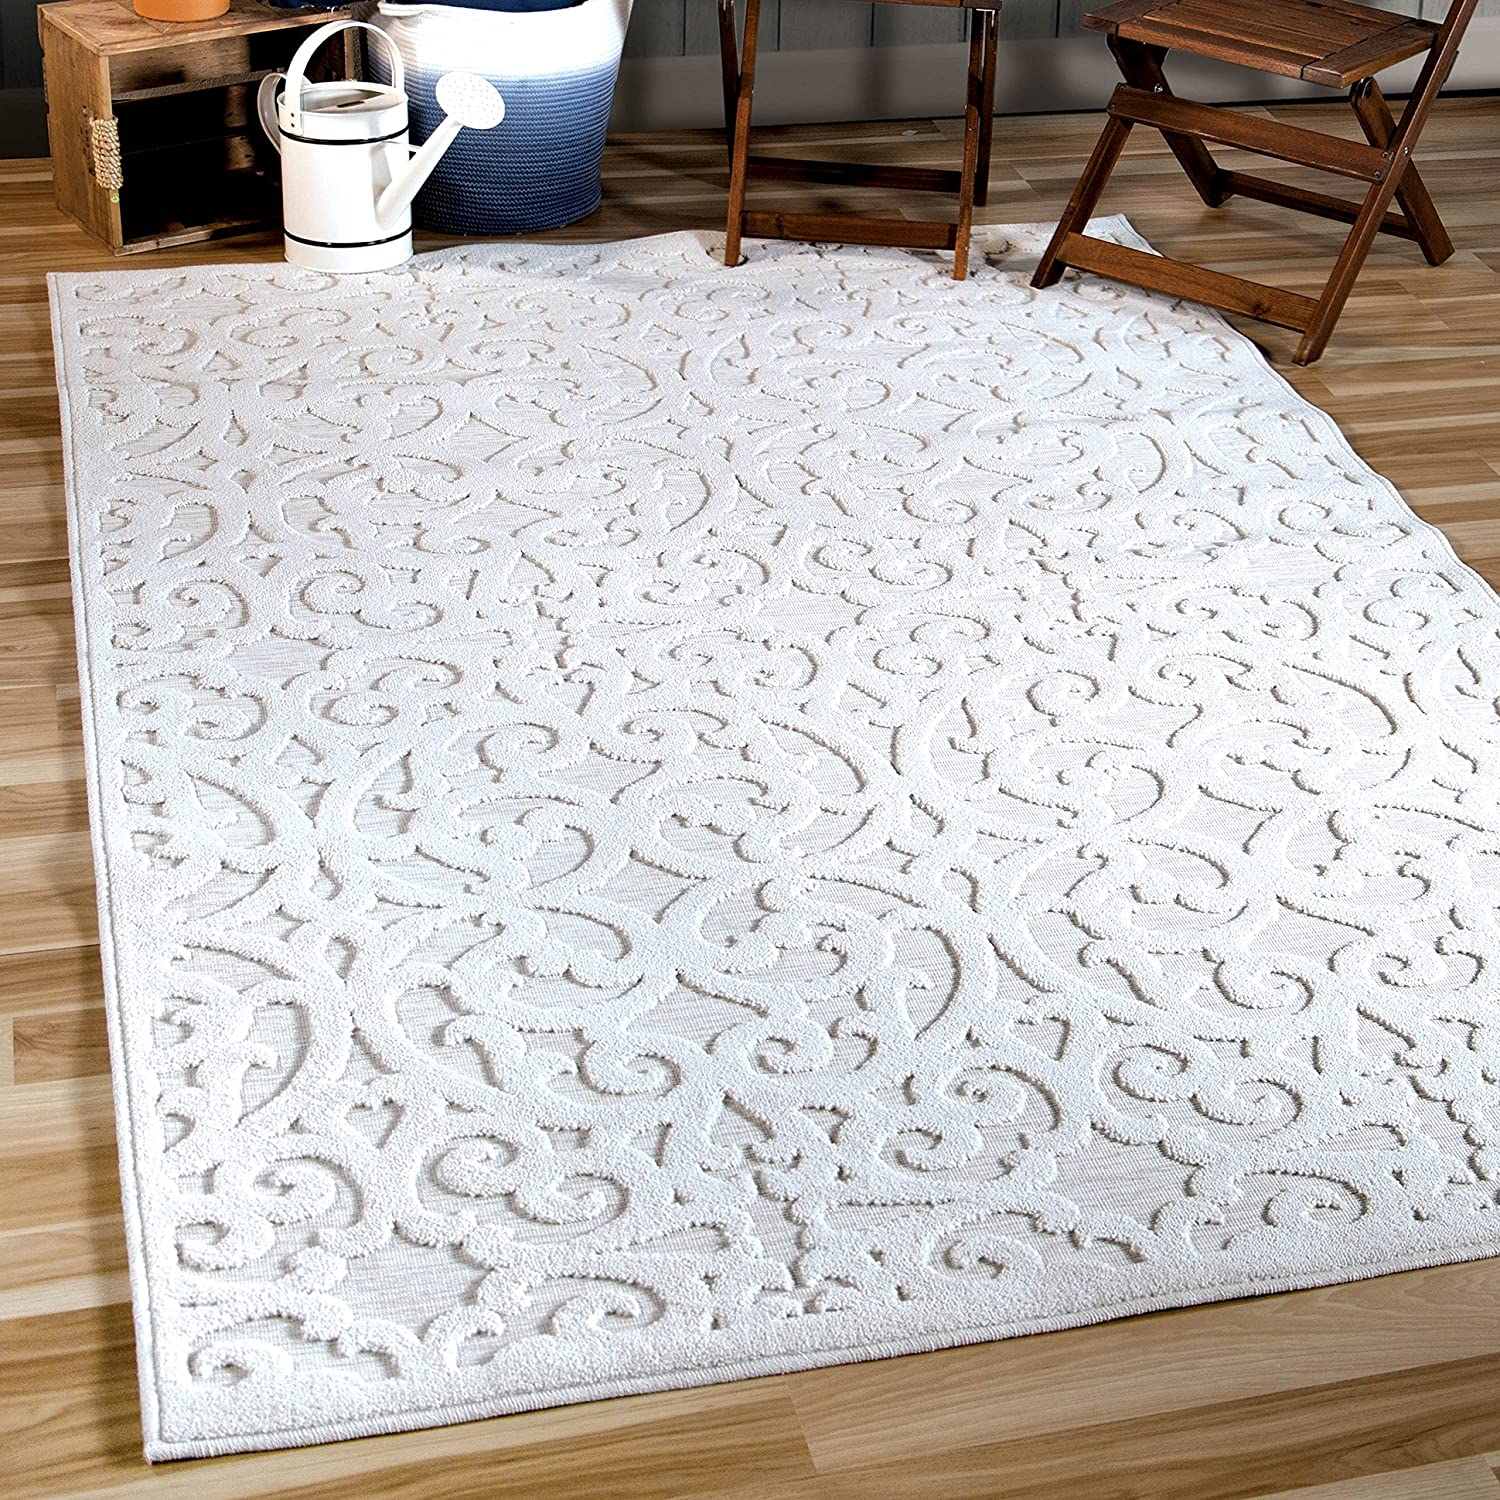 "Orian Sculpted 4704 Indoor/Outdoor High-Low Debonair Natural Area Rug, 5'2"" x 7'6"", Ivory"